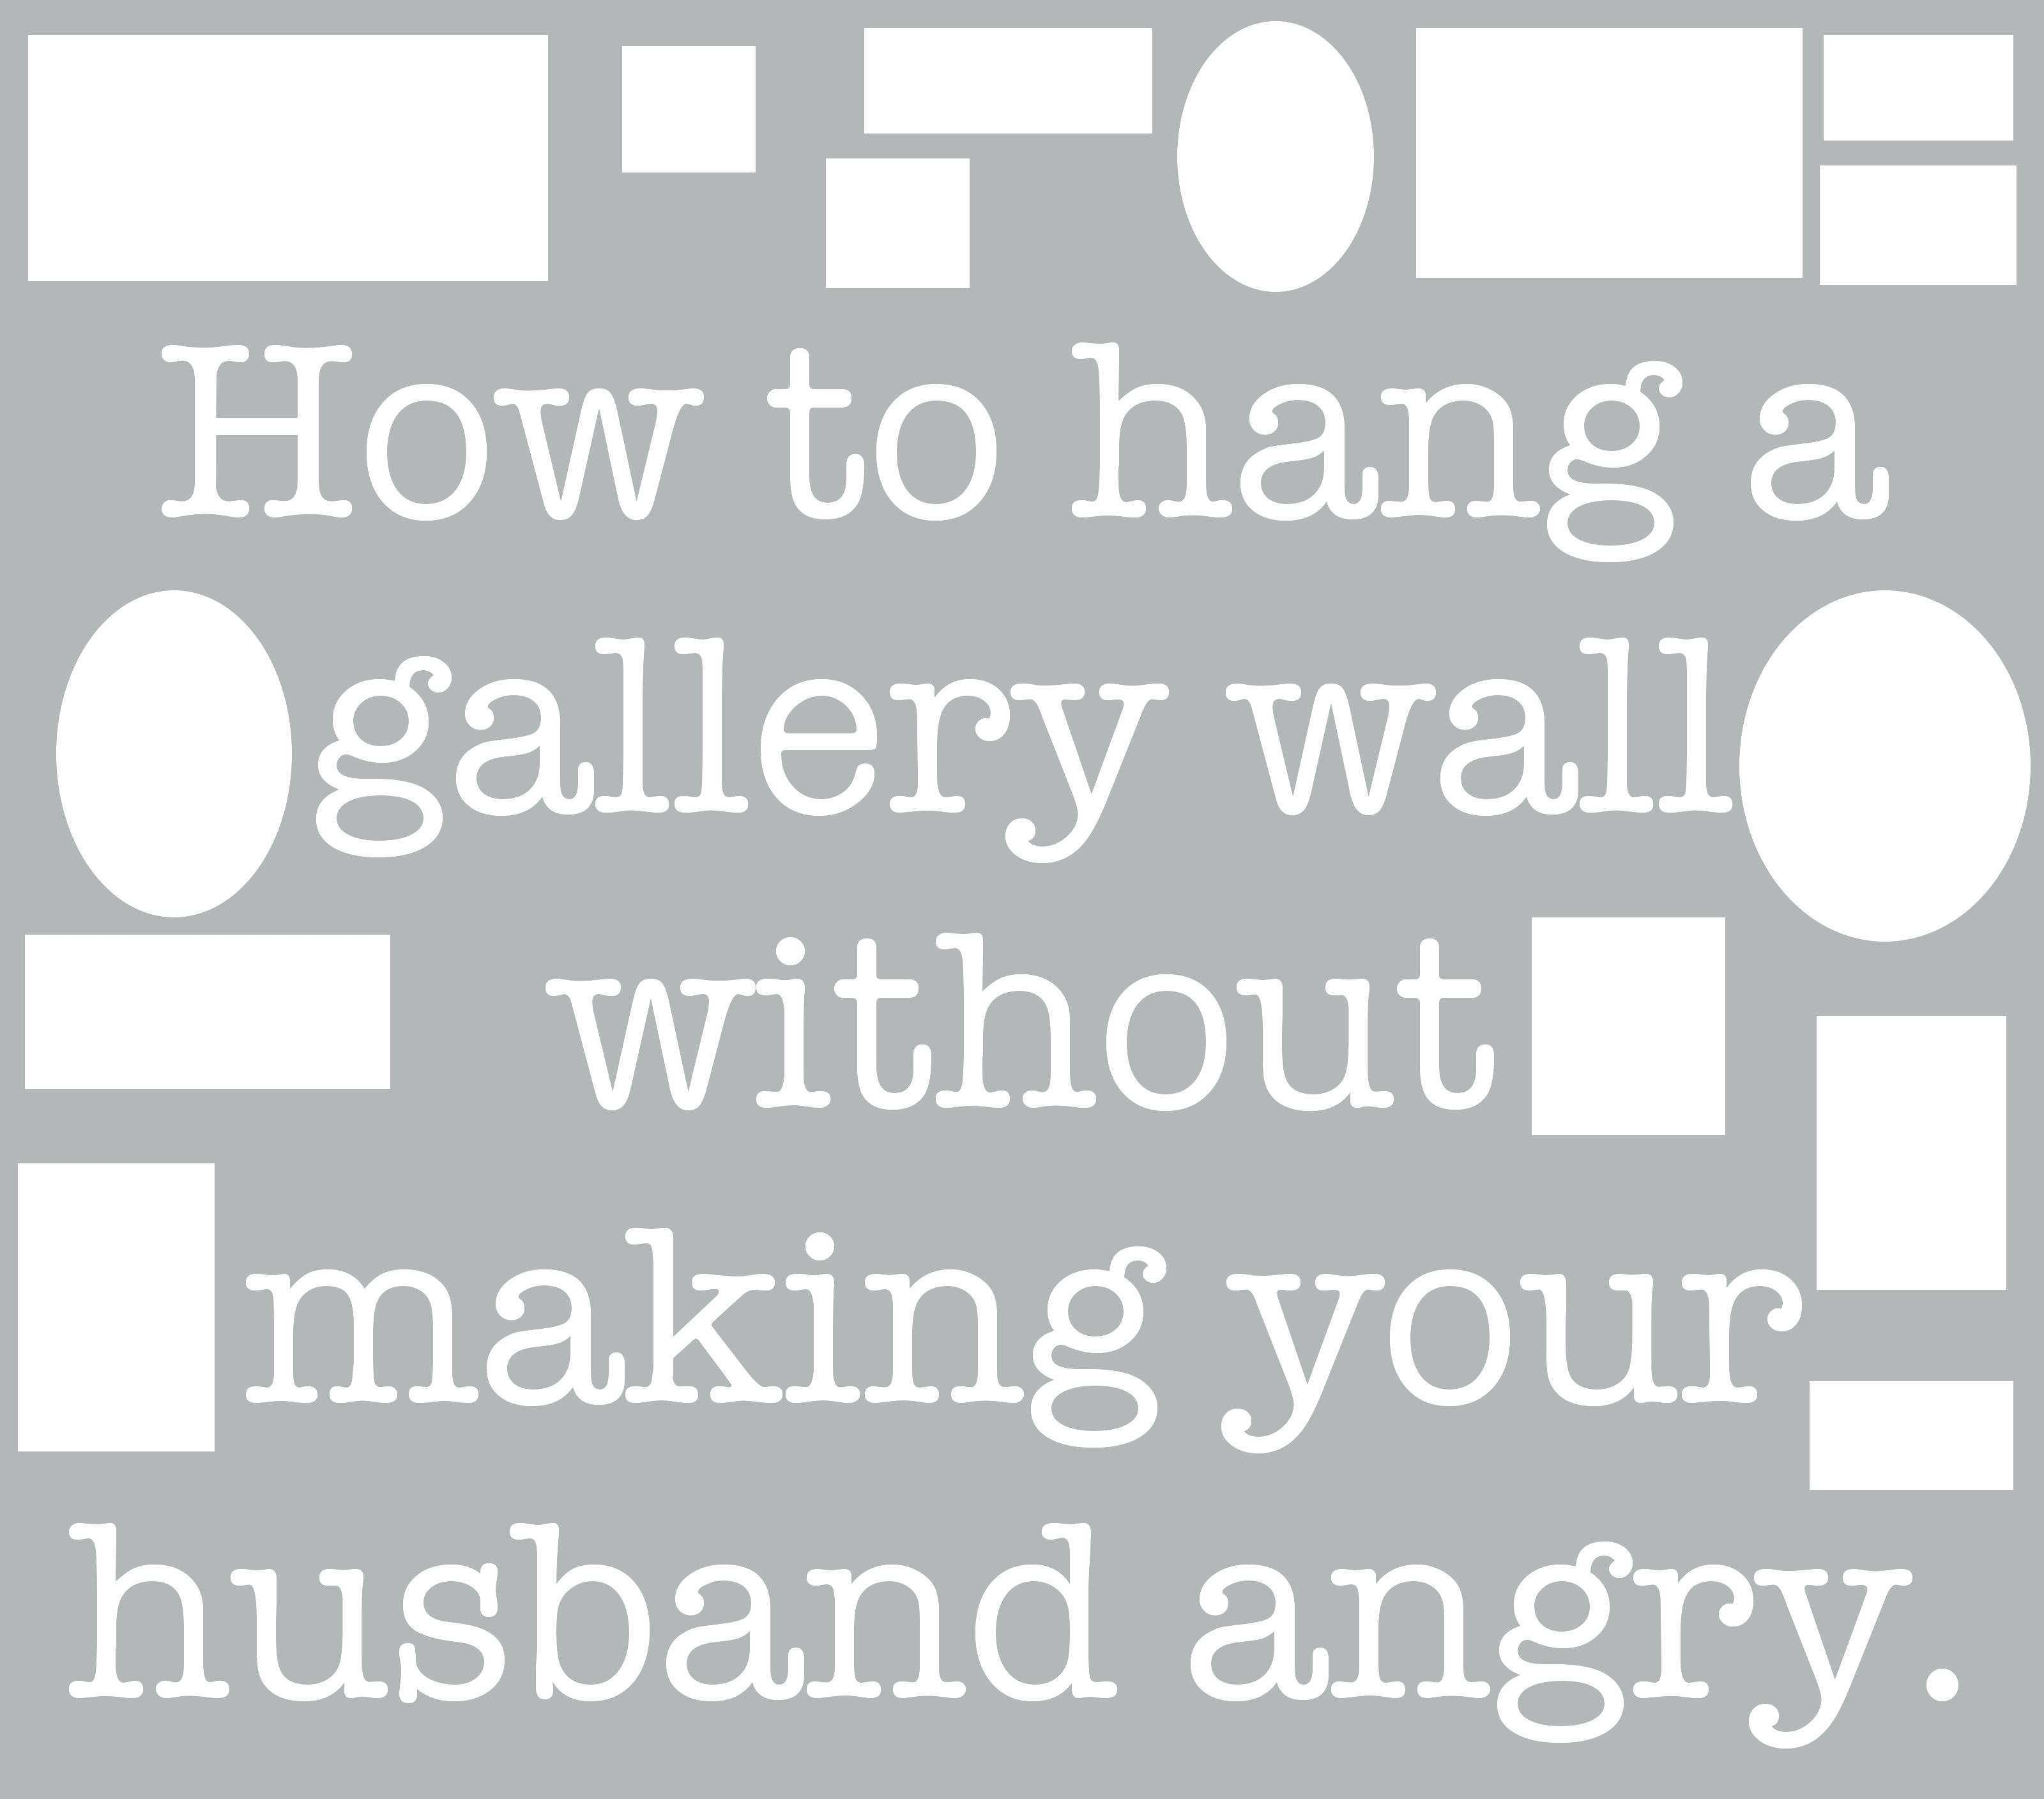 Hanging Pictures On Plaster Walls Awesome How to Hang Wall Concrete without Nails Walls Holes Lath